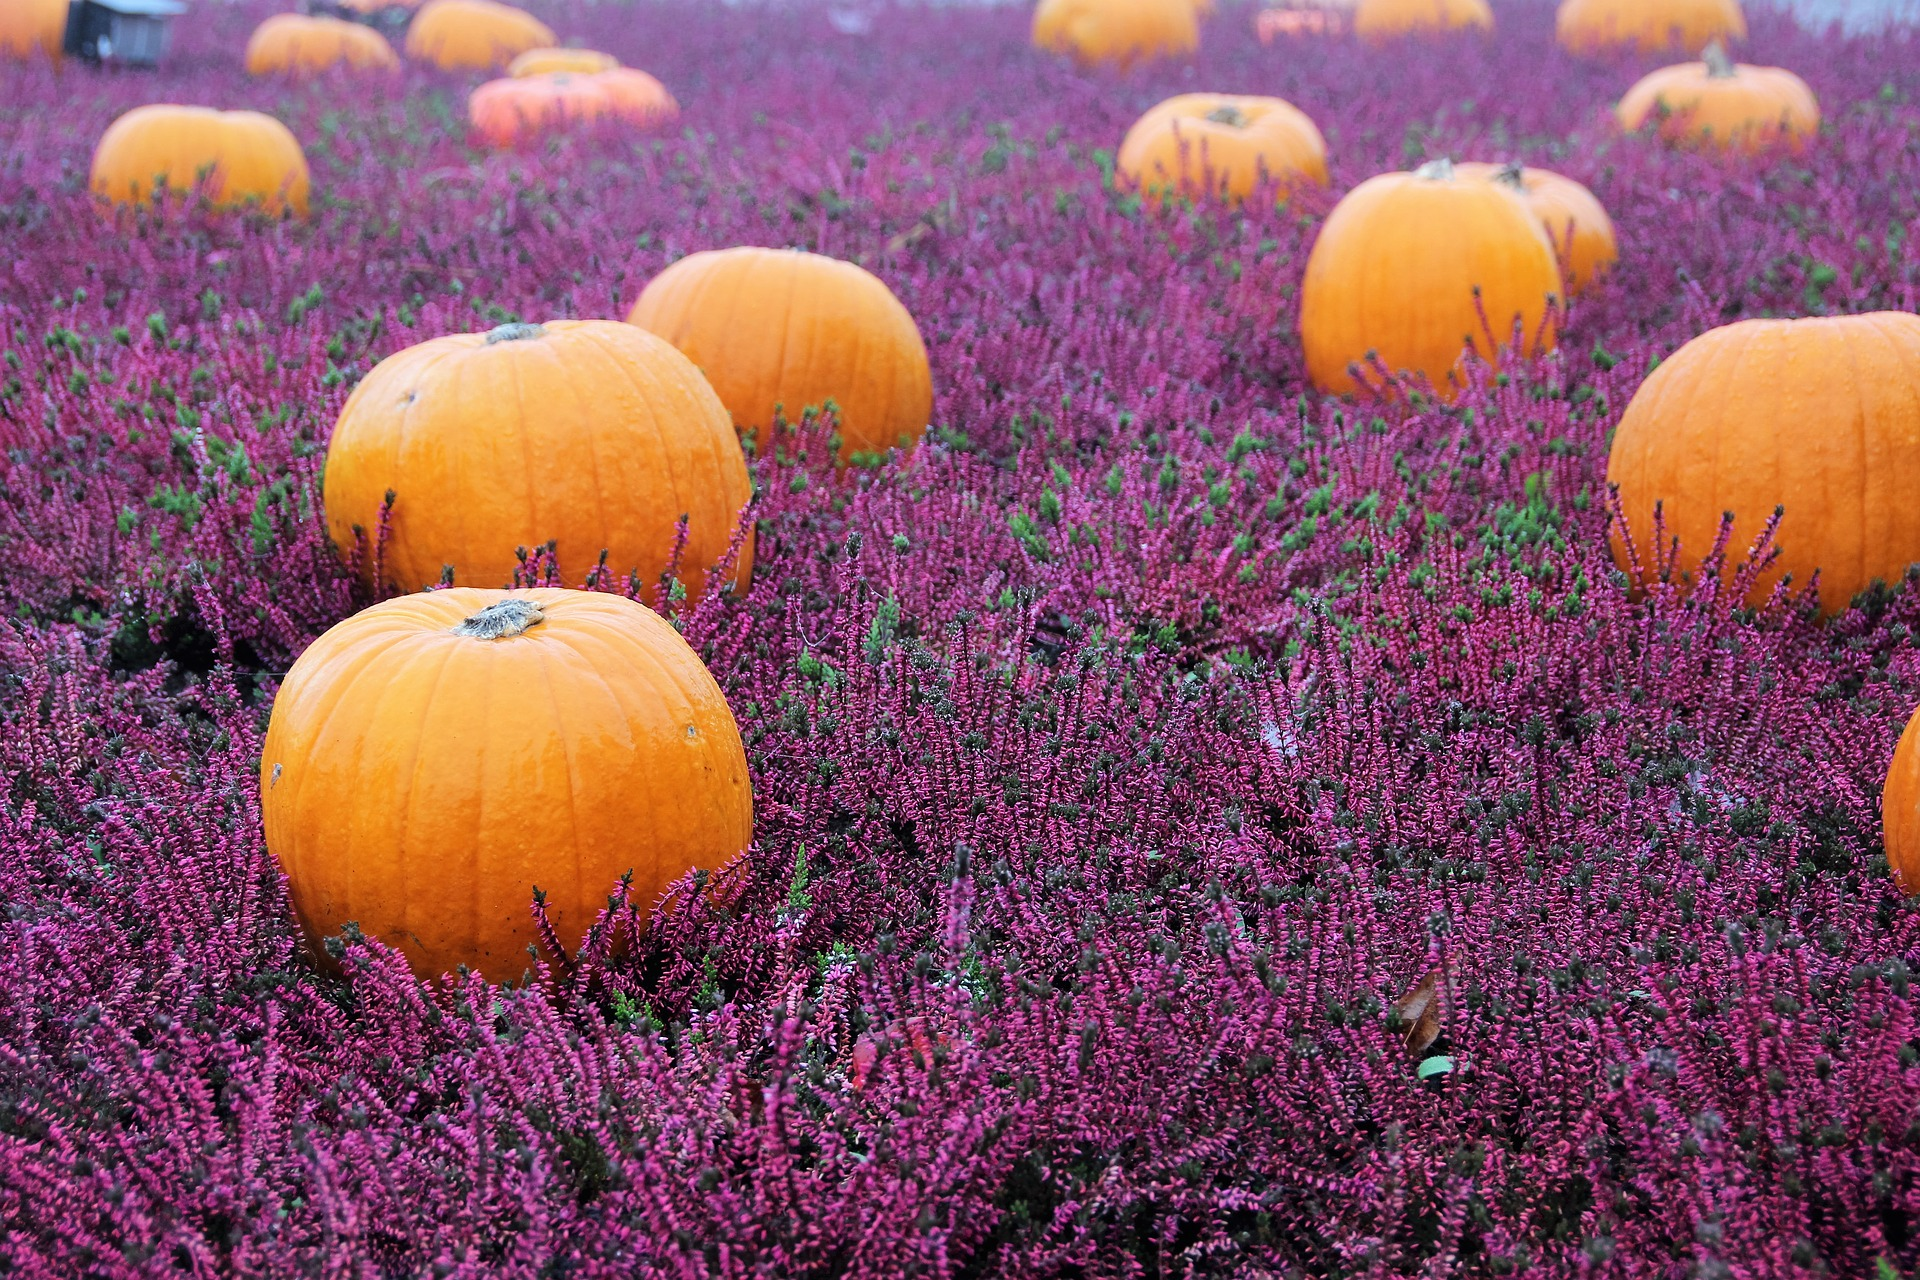 pumpkins and lavender